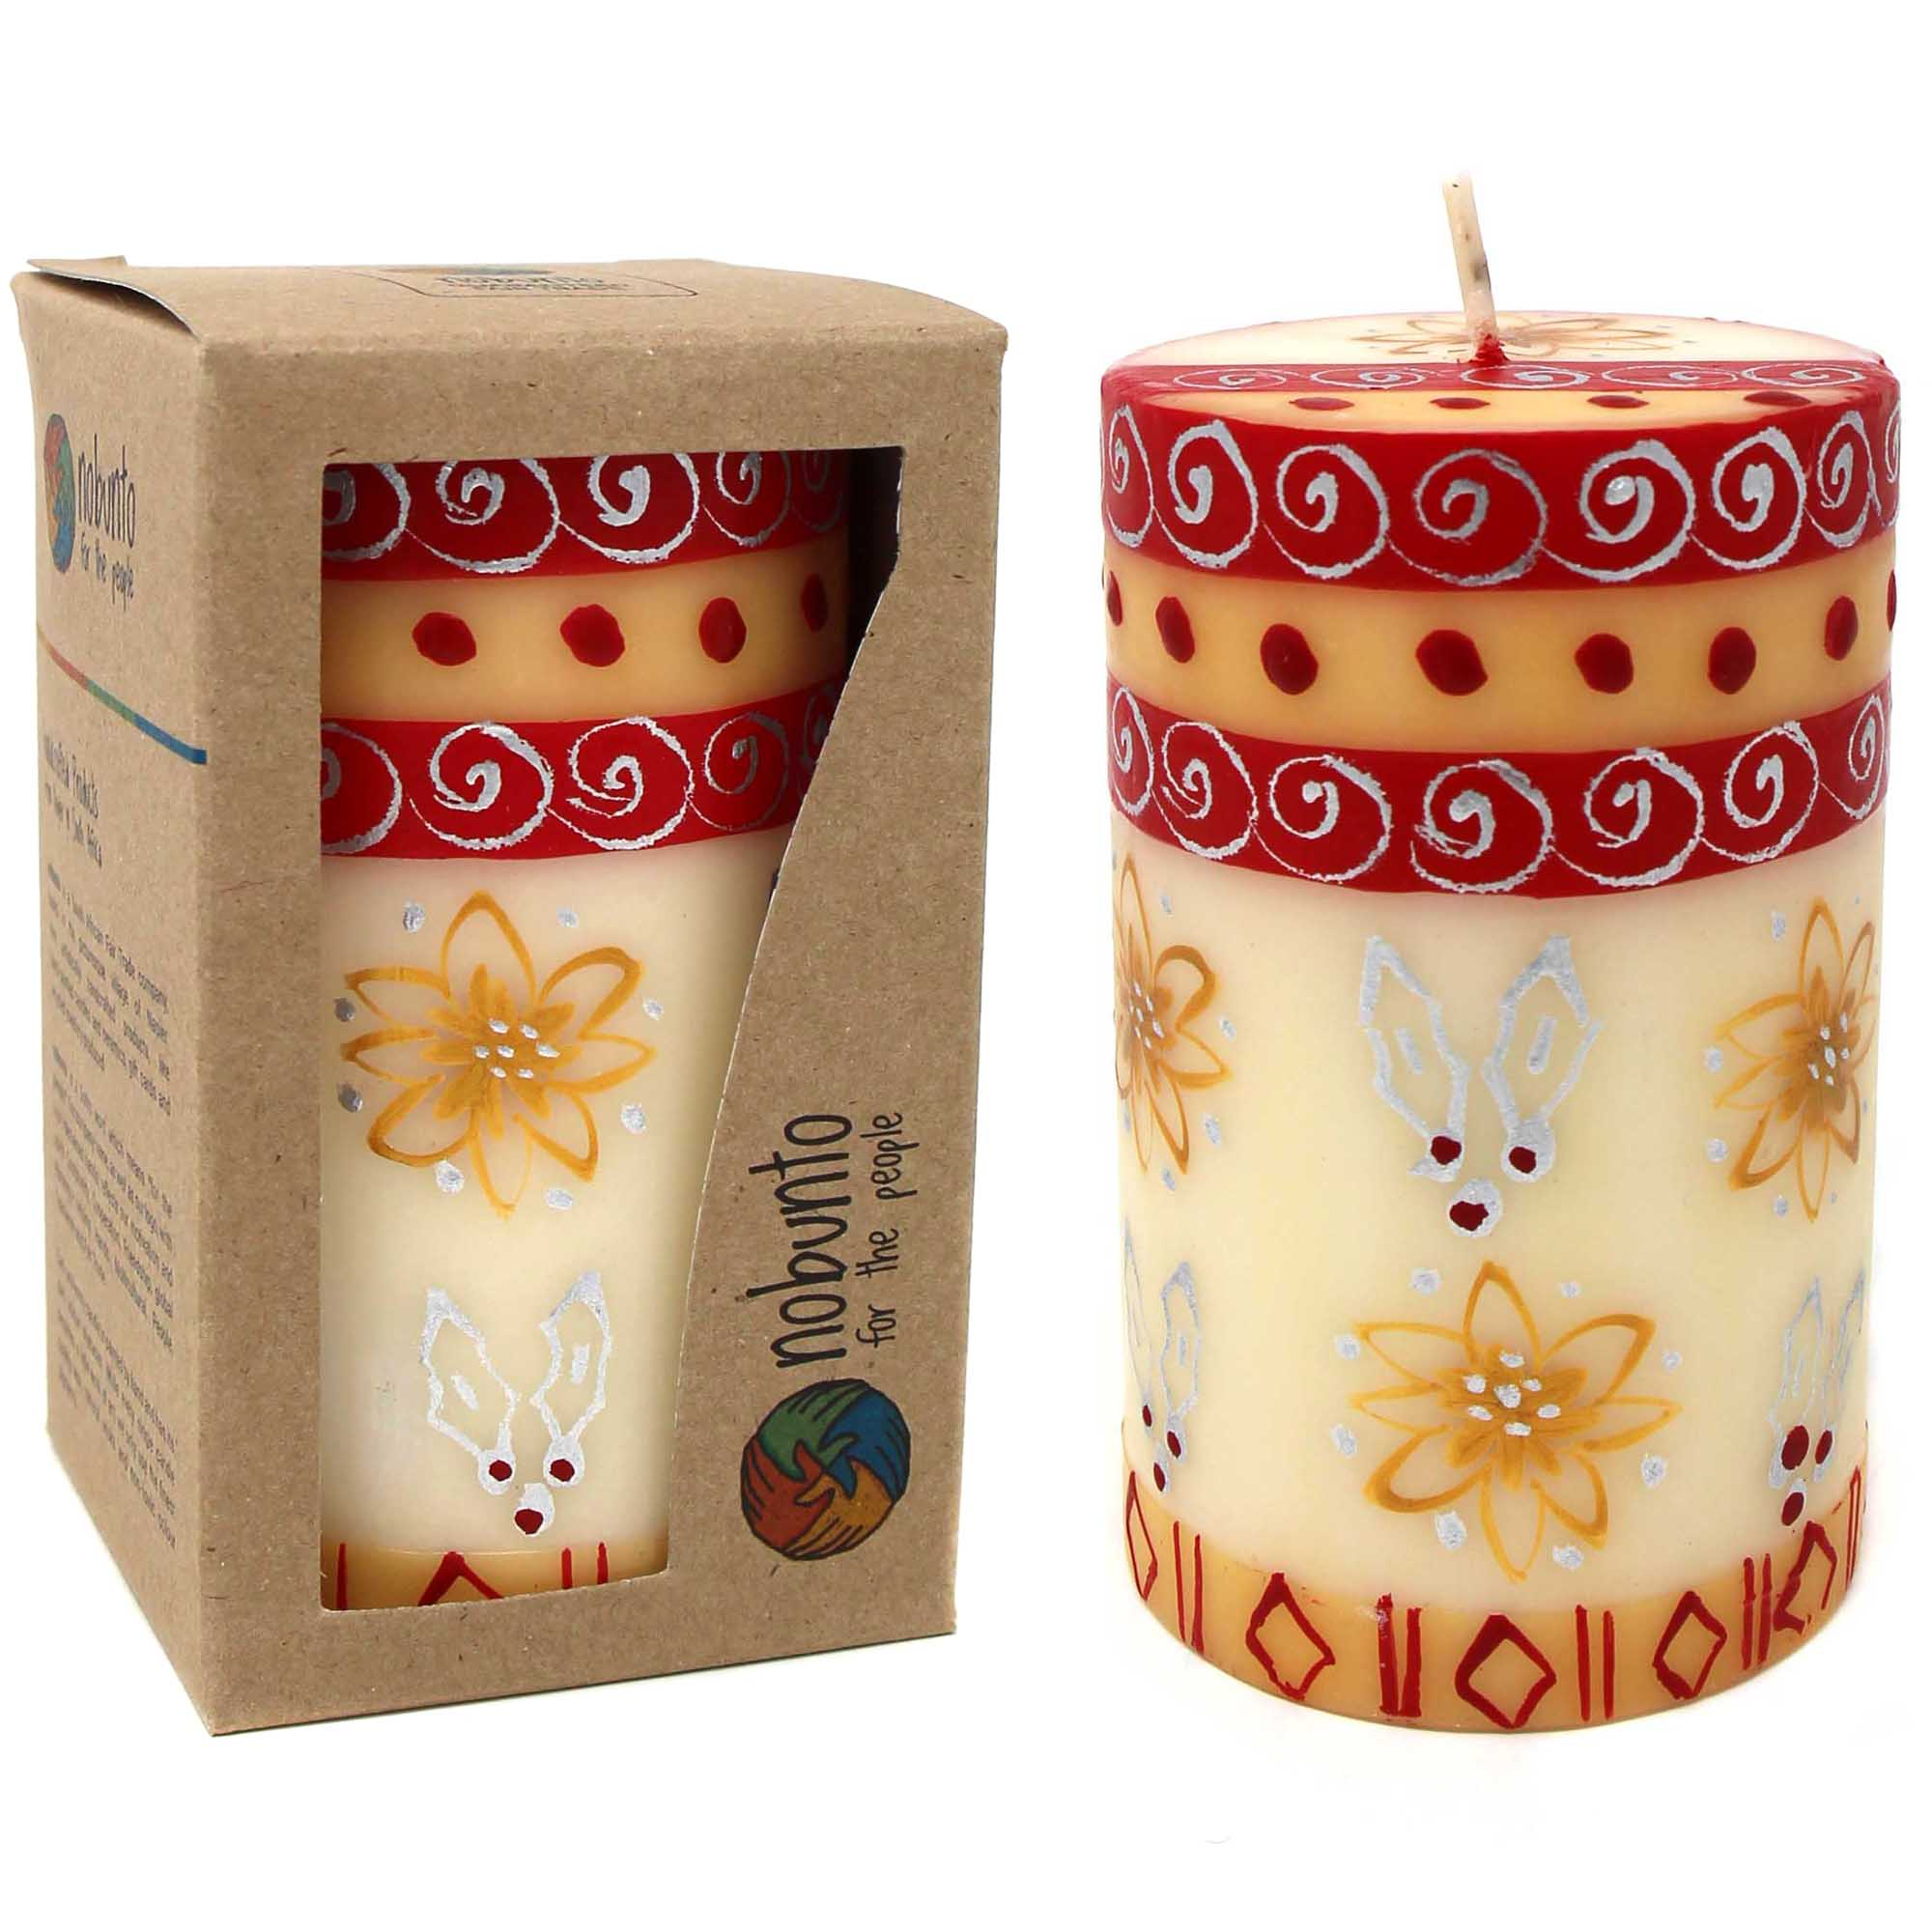 Christmas Hand-Painted Pillar Candle in Gift Box, 4-inch (Kimeta Design)